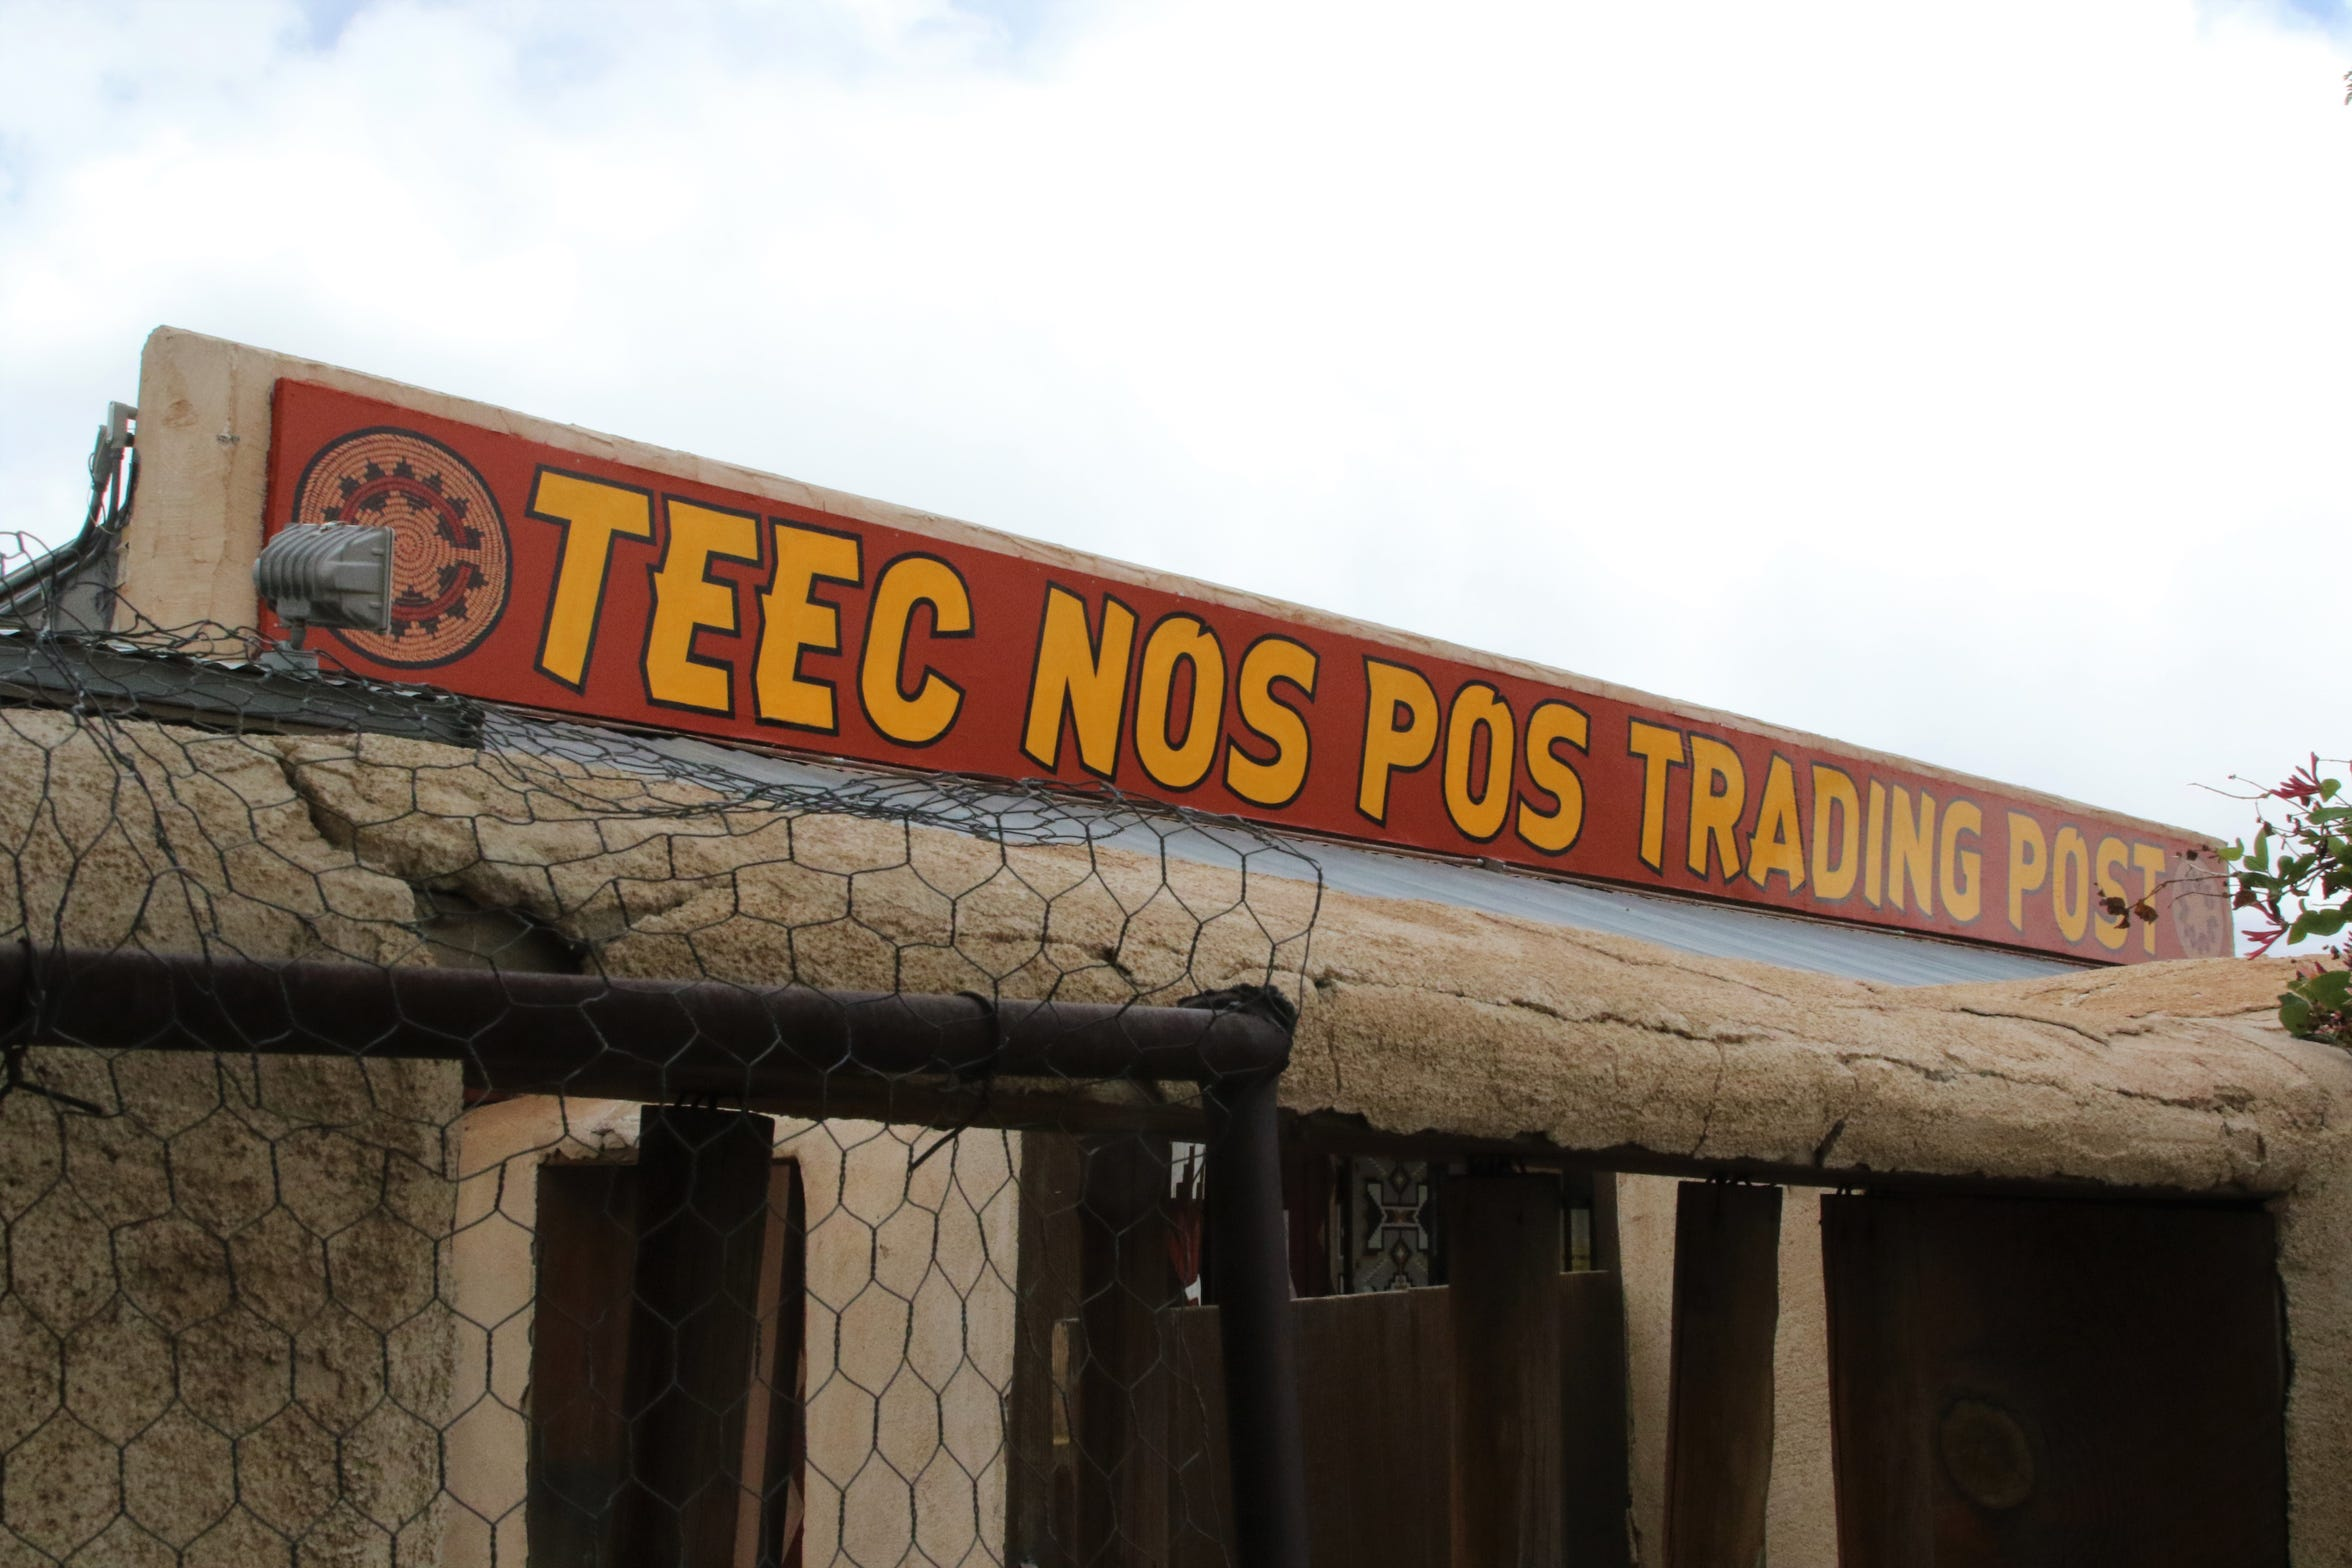 The Teec Nos Pos Trading Post was founded in 1905 and is one of the few in the area that continues to operate as a traditional trading post.